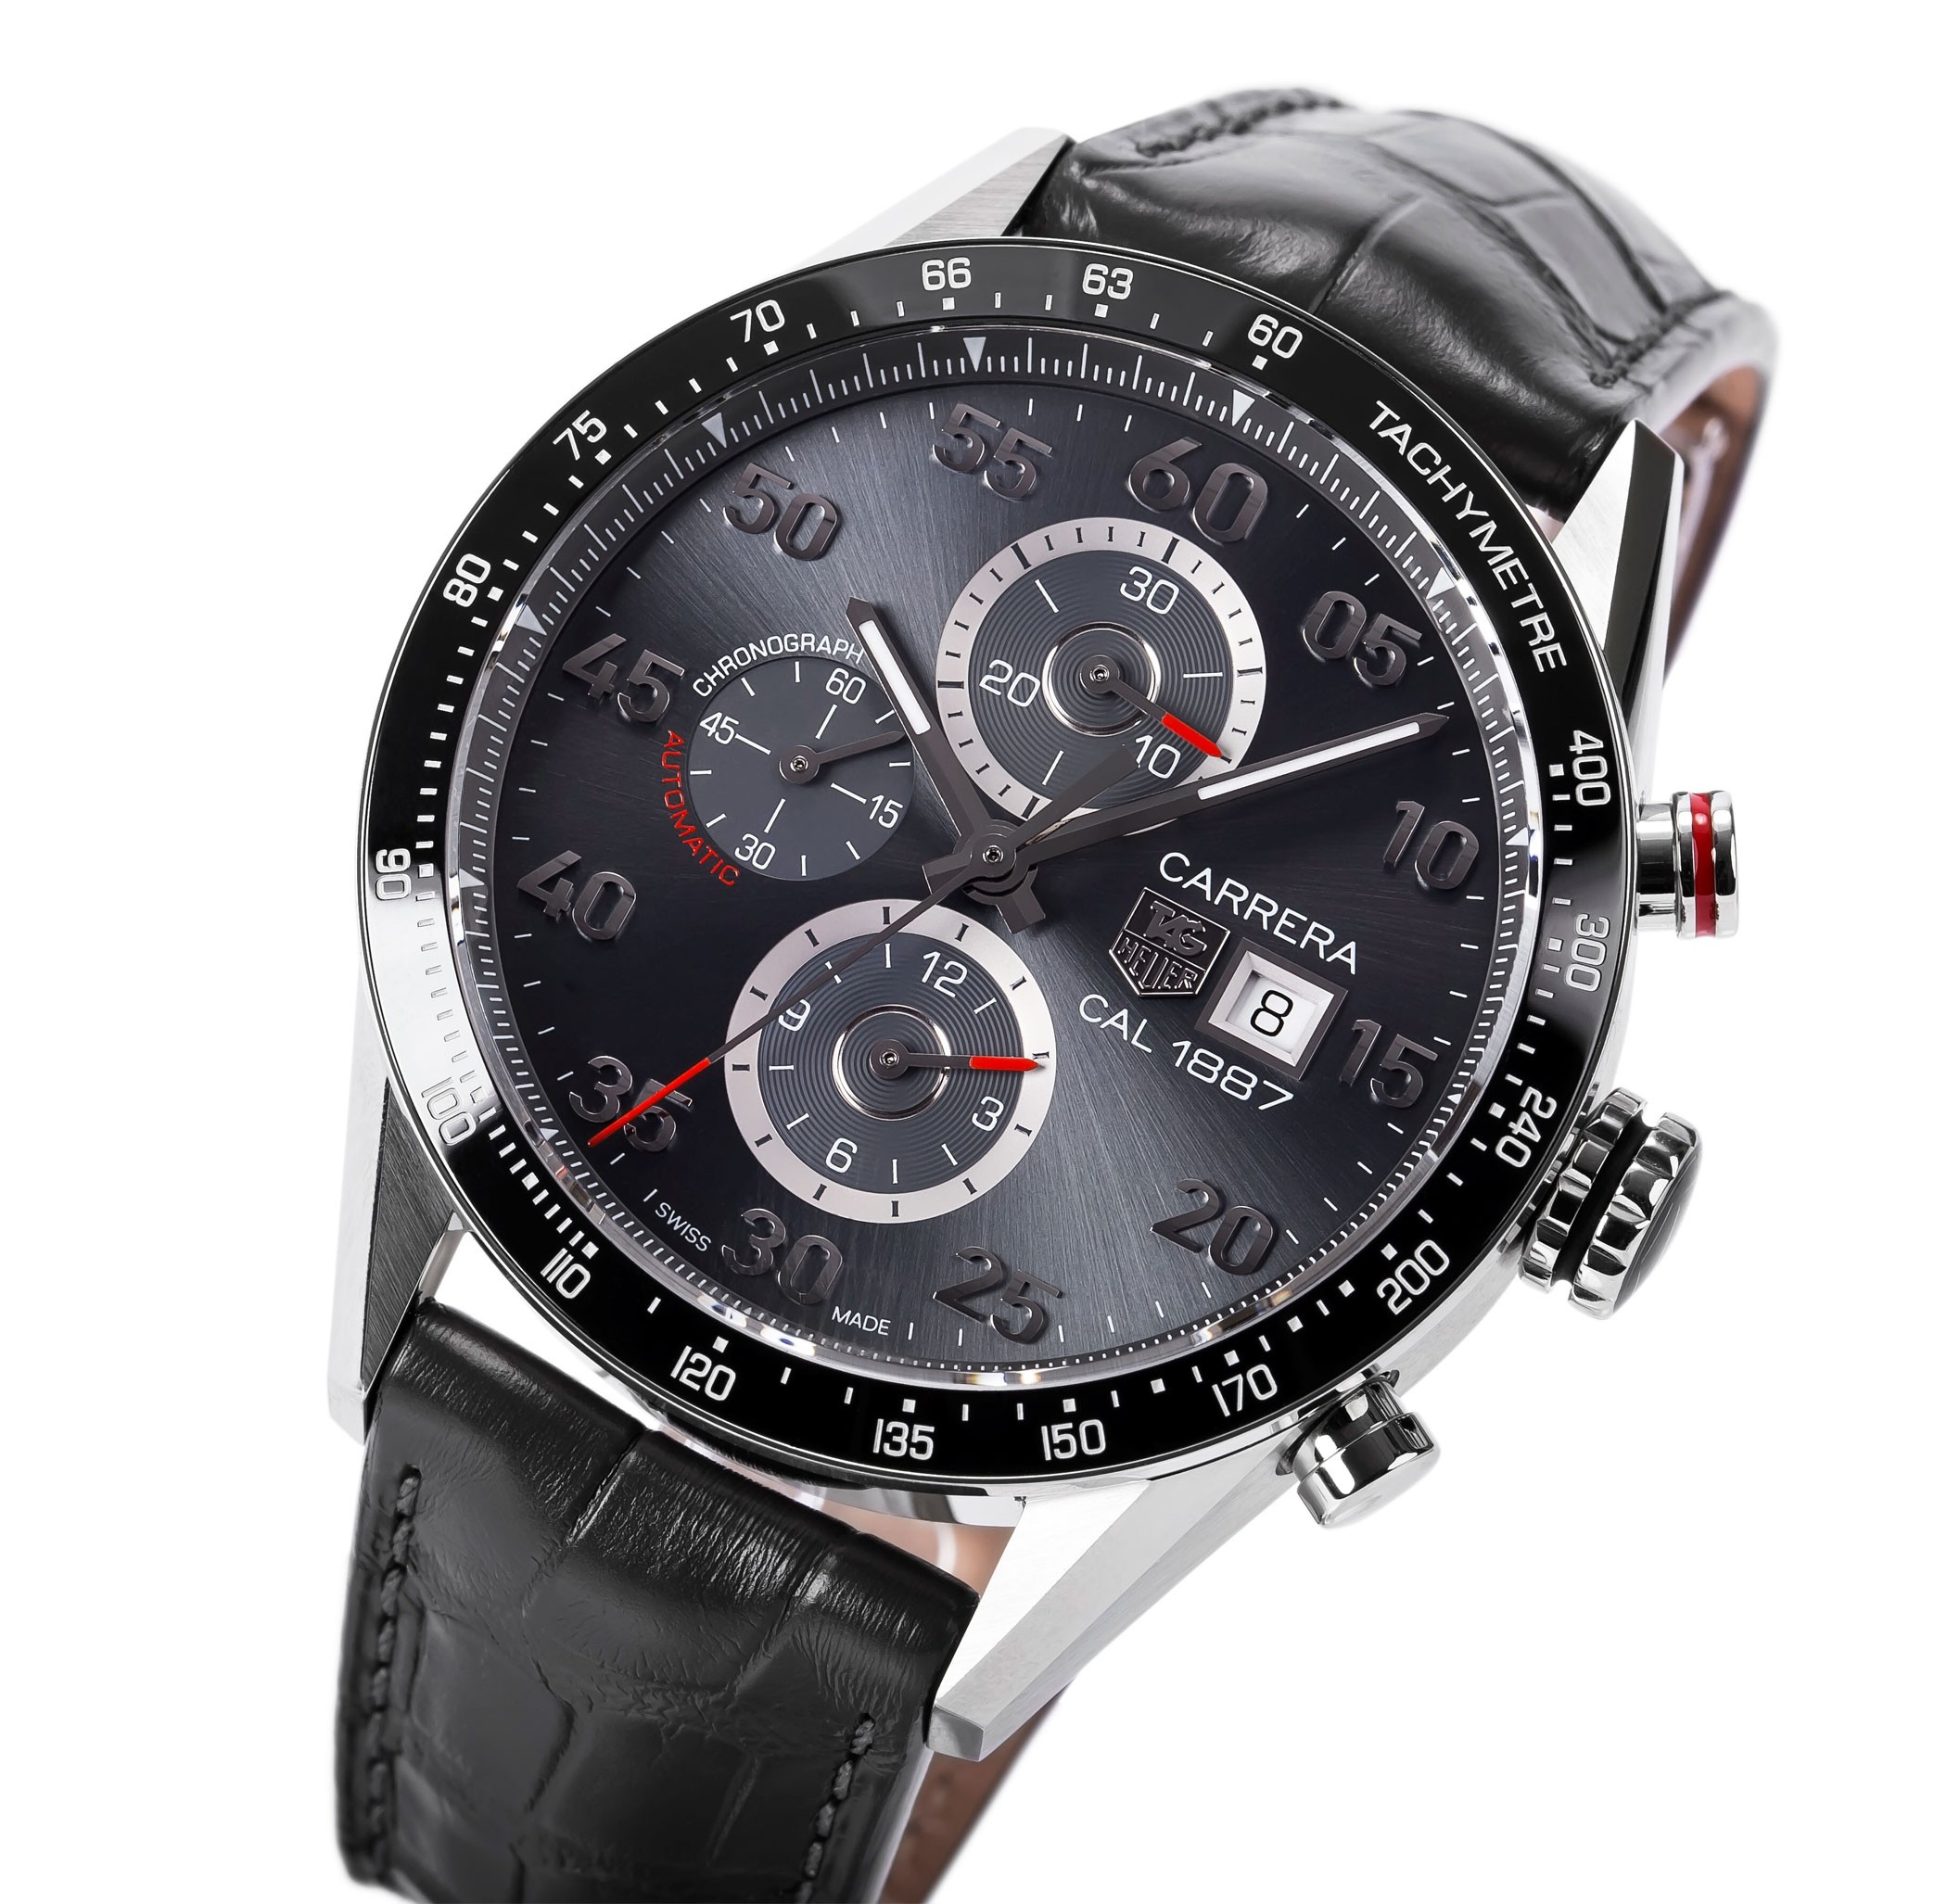 Tag Heuer Carrera 1887 Automatic Chronograph The Coolector Space Leather